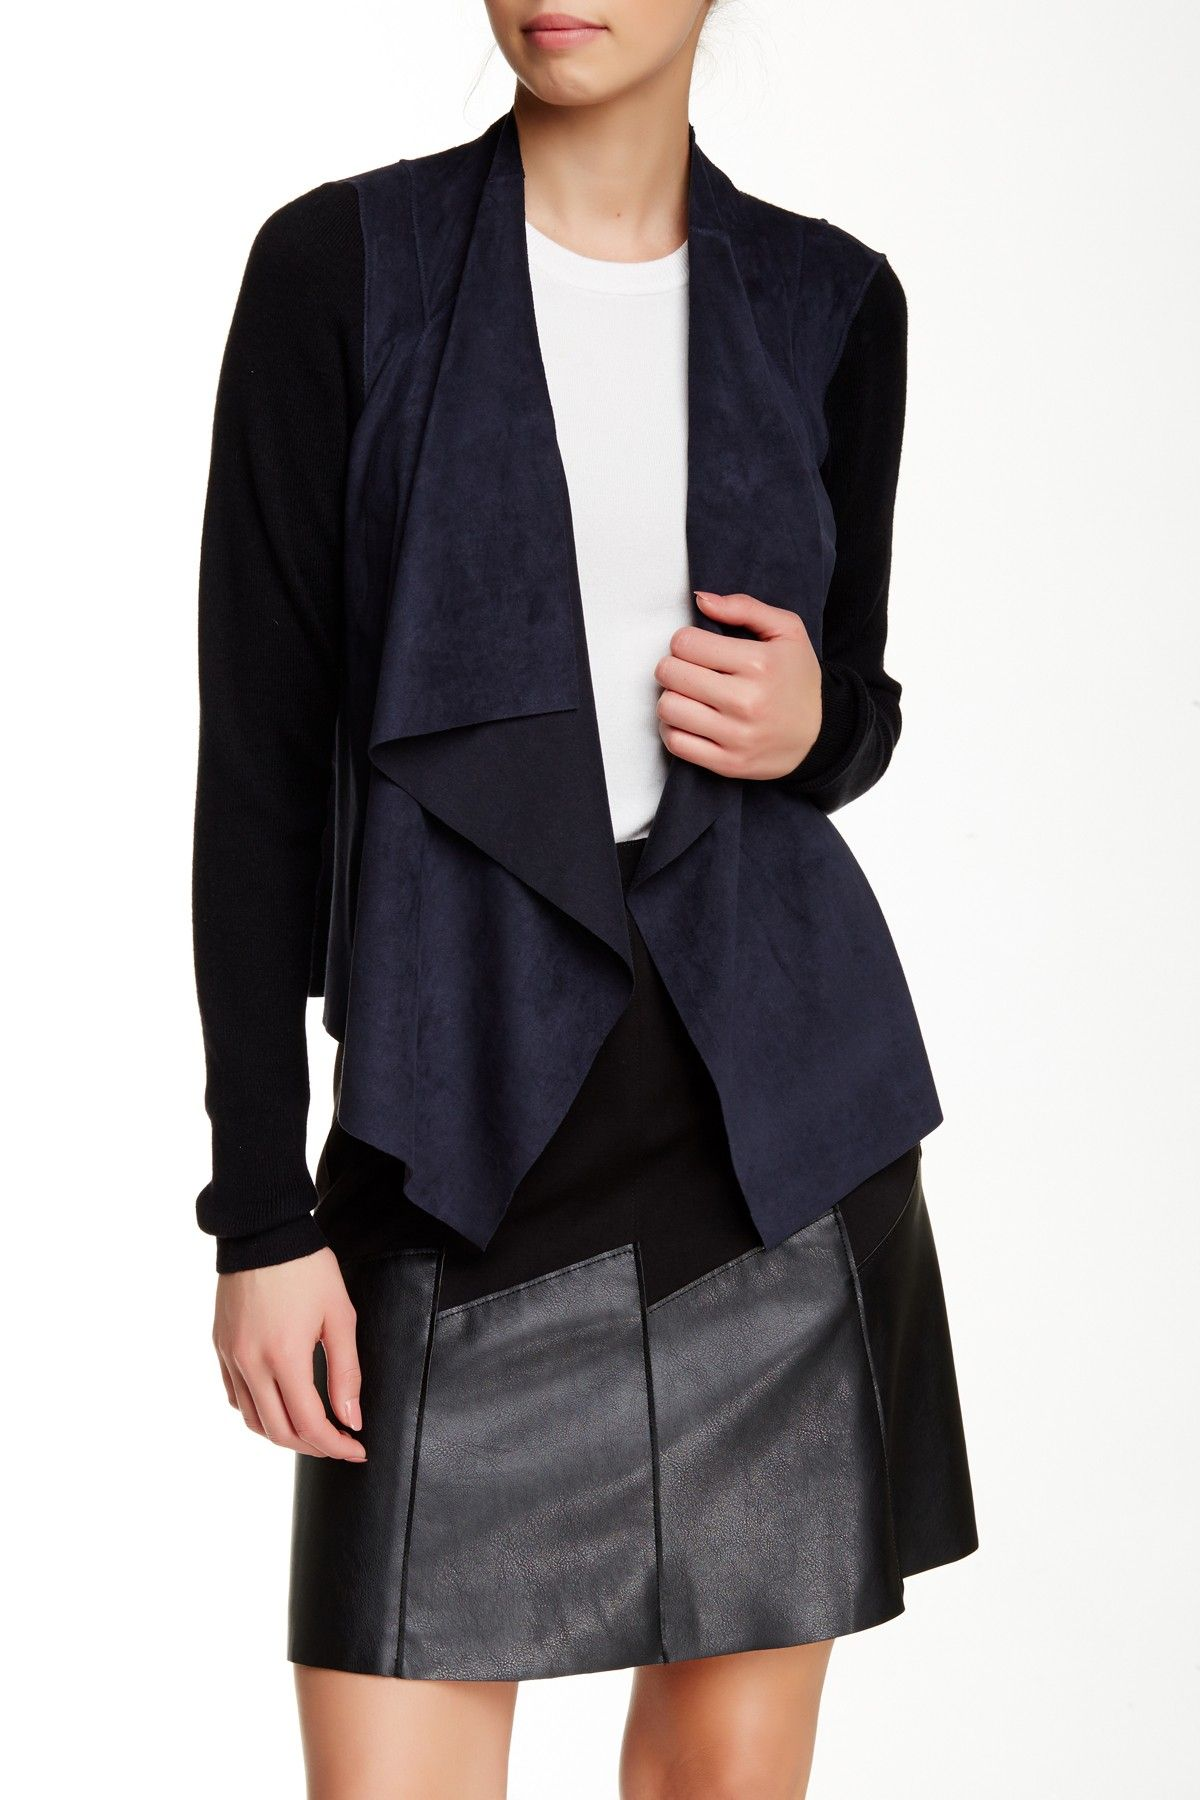 Tahari - Deryn Sweater at Nordstrom Rack. Free Shipping on orders over $100.